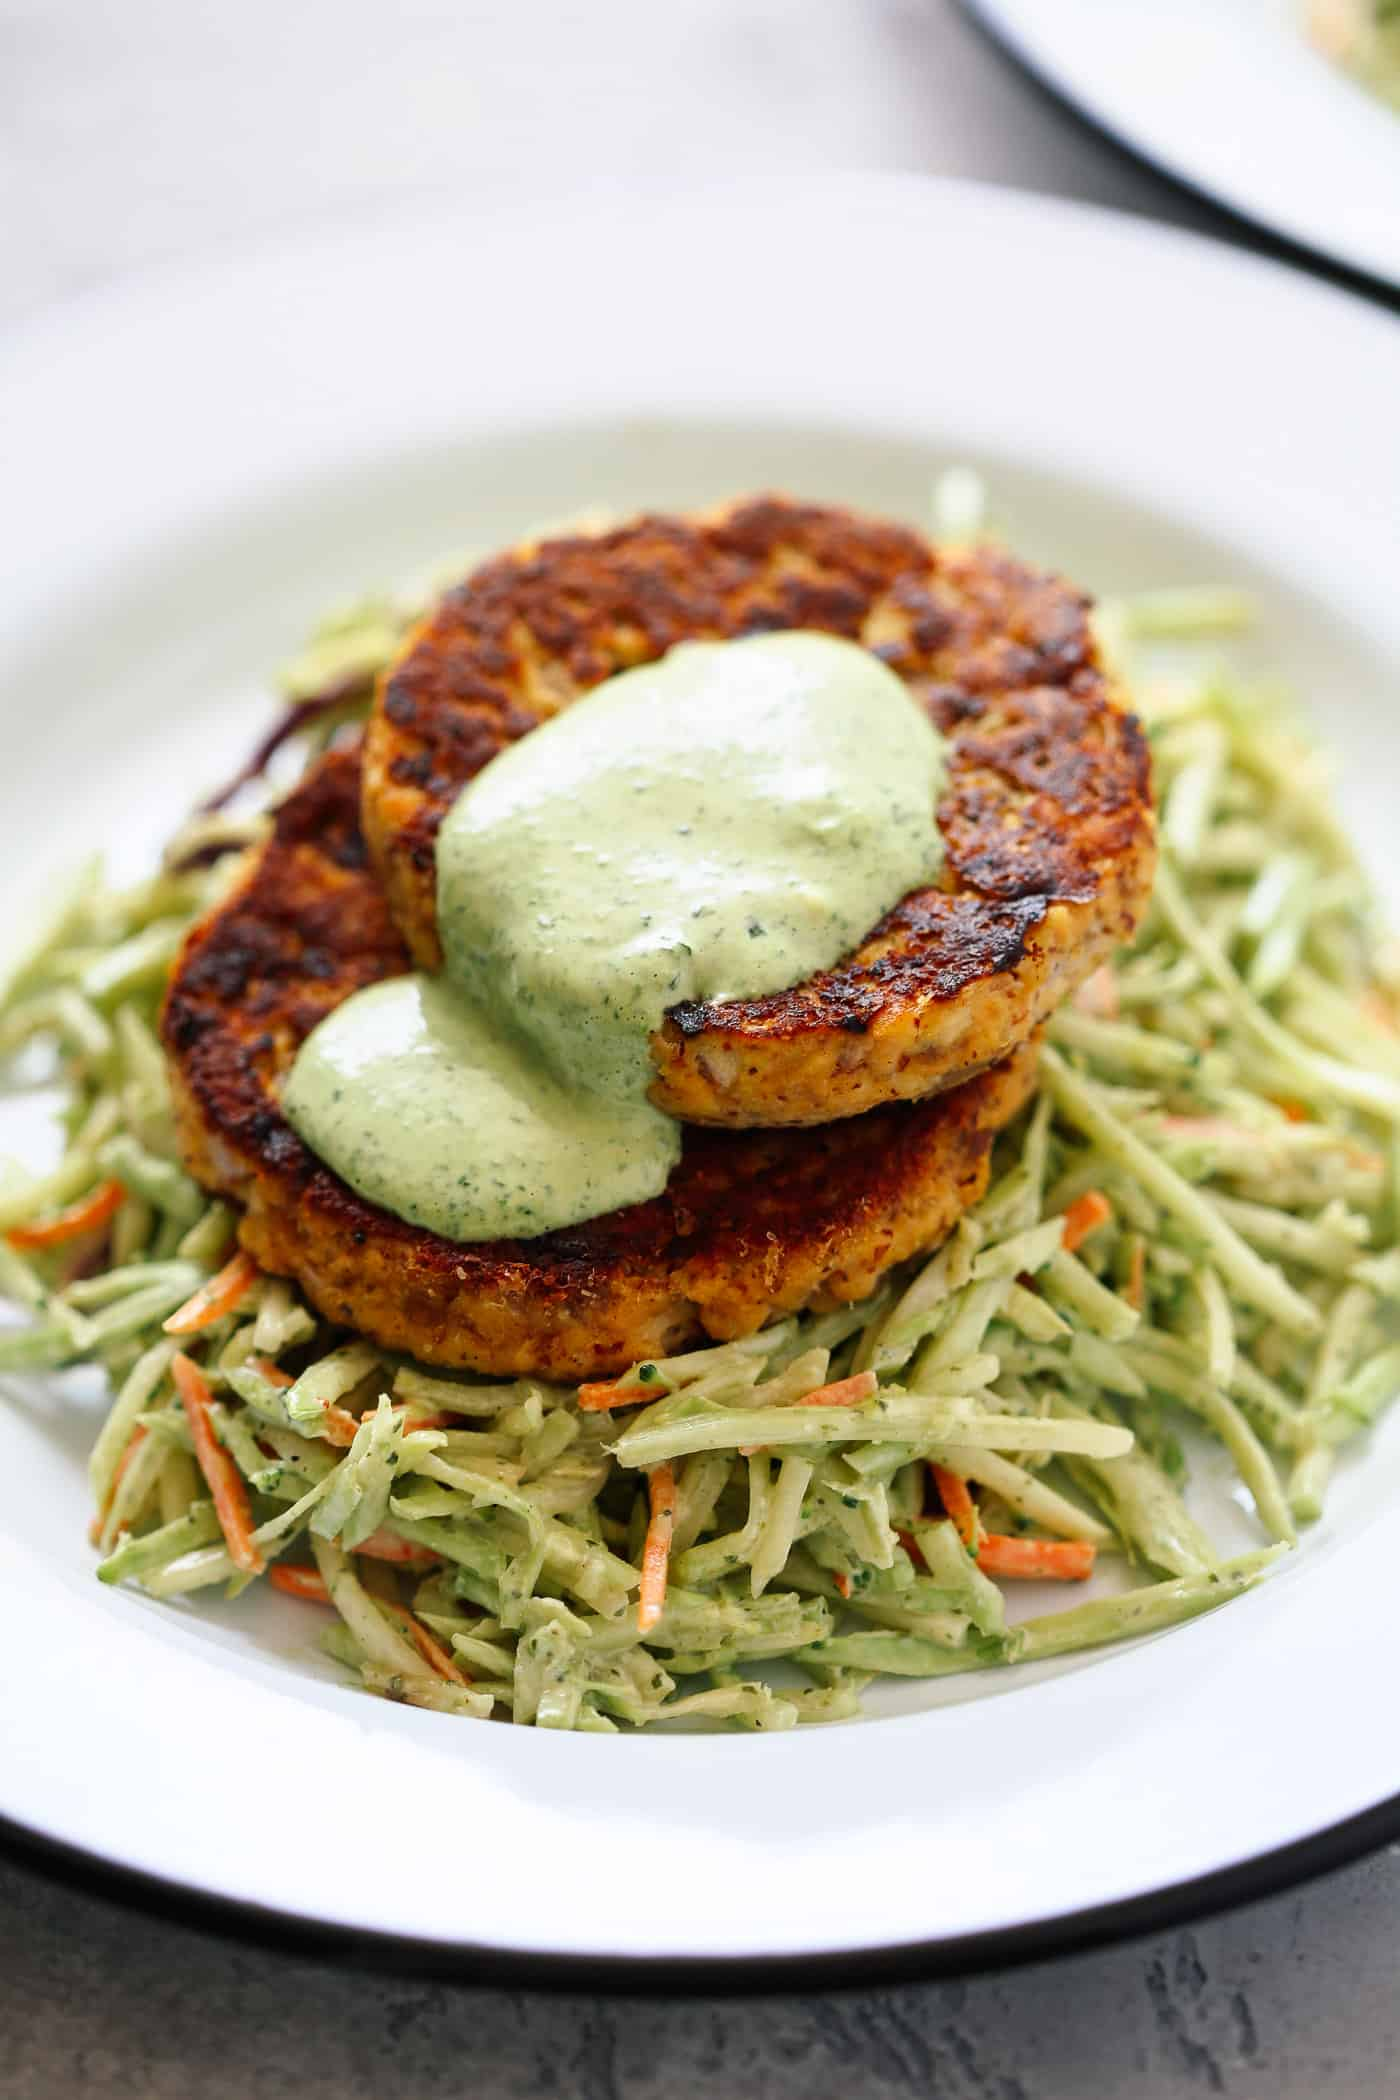 Low-Carb Salmon Burgers with Avocado Coleslaw - Primavera Kitchen